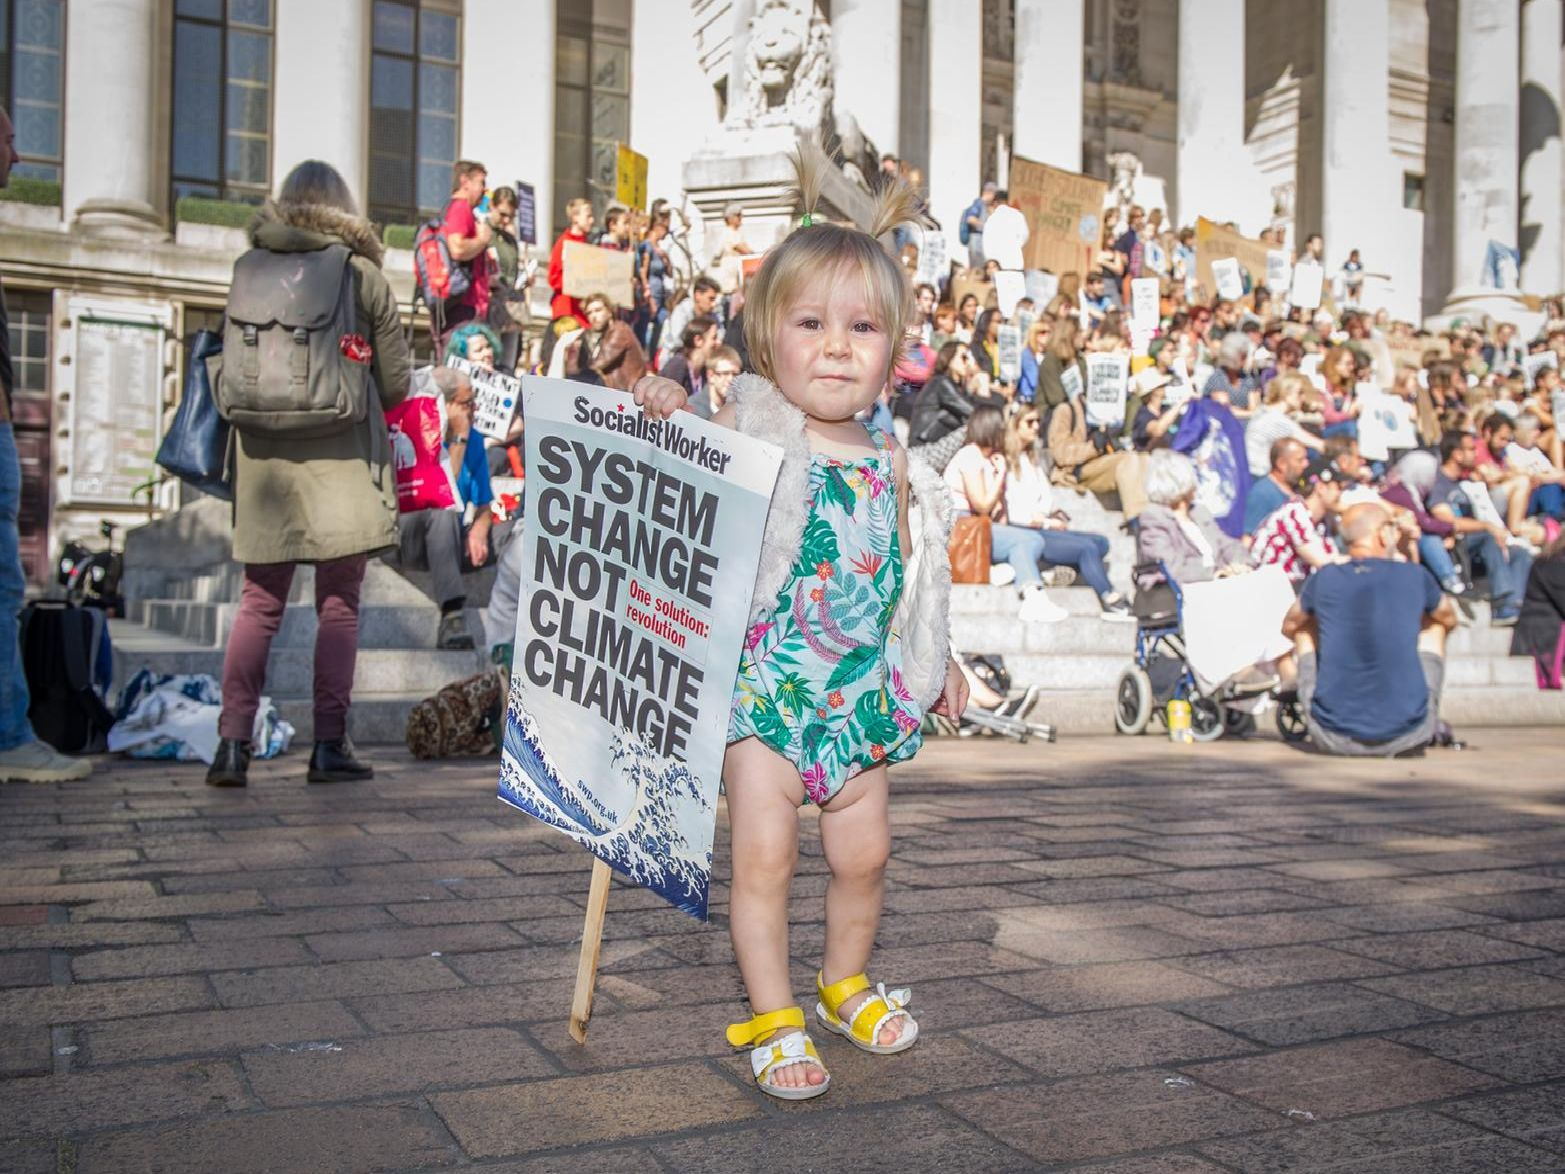 One-year-old Texas Dollani at the protest. Picture: Habibur Rahman